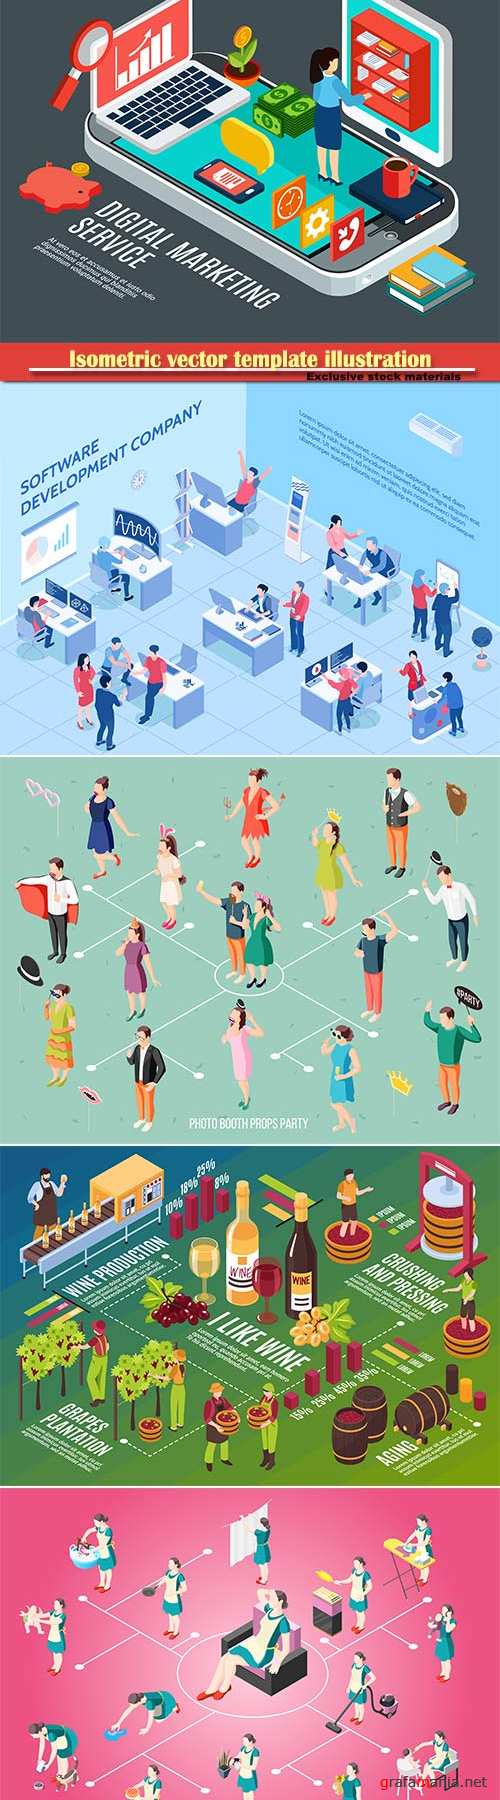 Isometric vector template illustration # 28